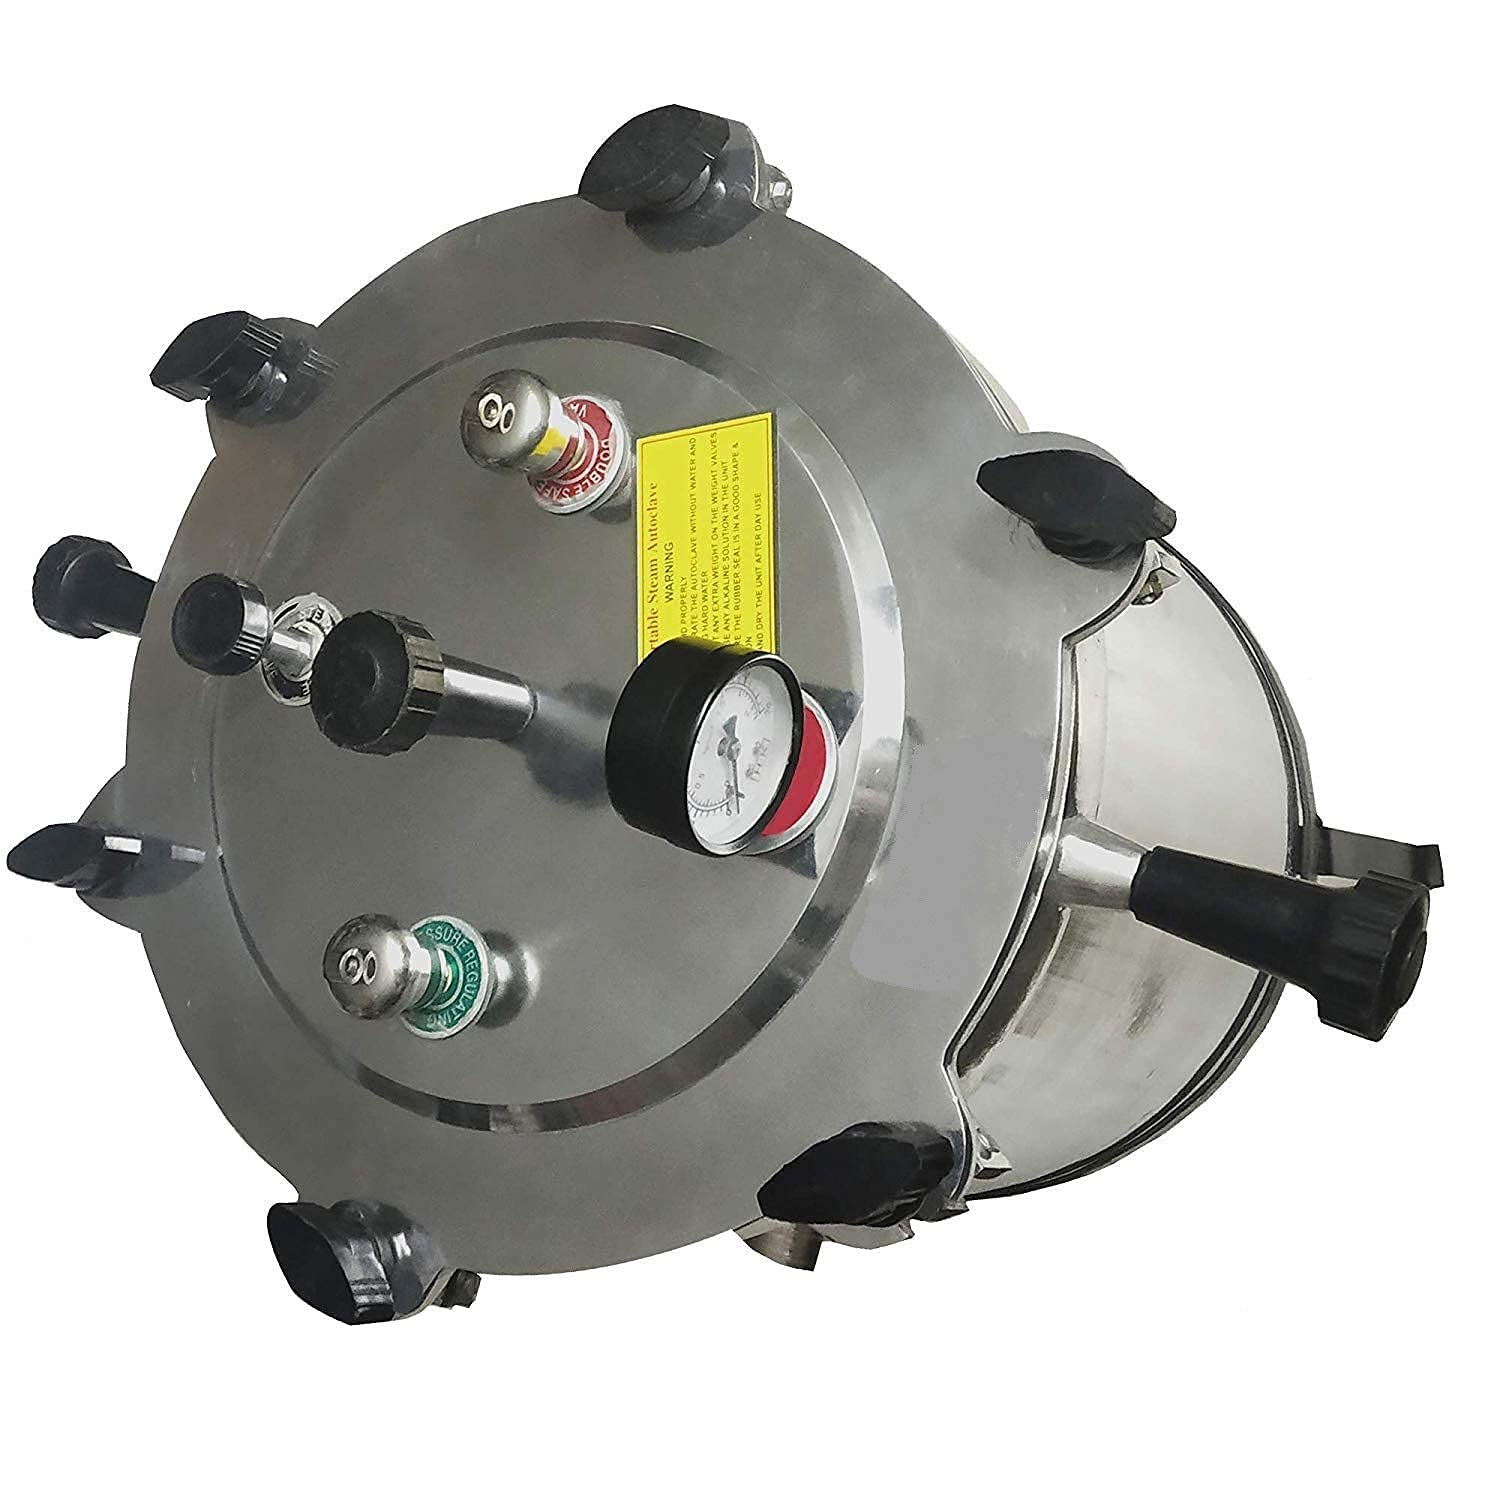 Portable Autoclave Six Wing Free shipping on posting reviews Aluminium Material-Aluminium Nut Onl Max 41% OFF